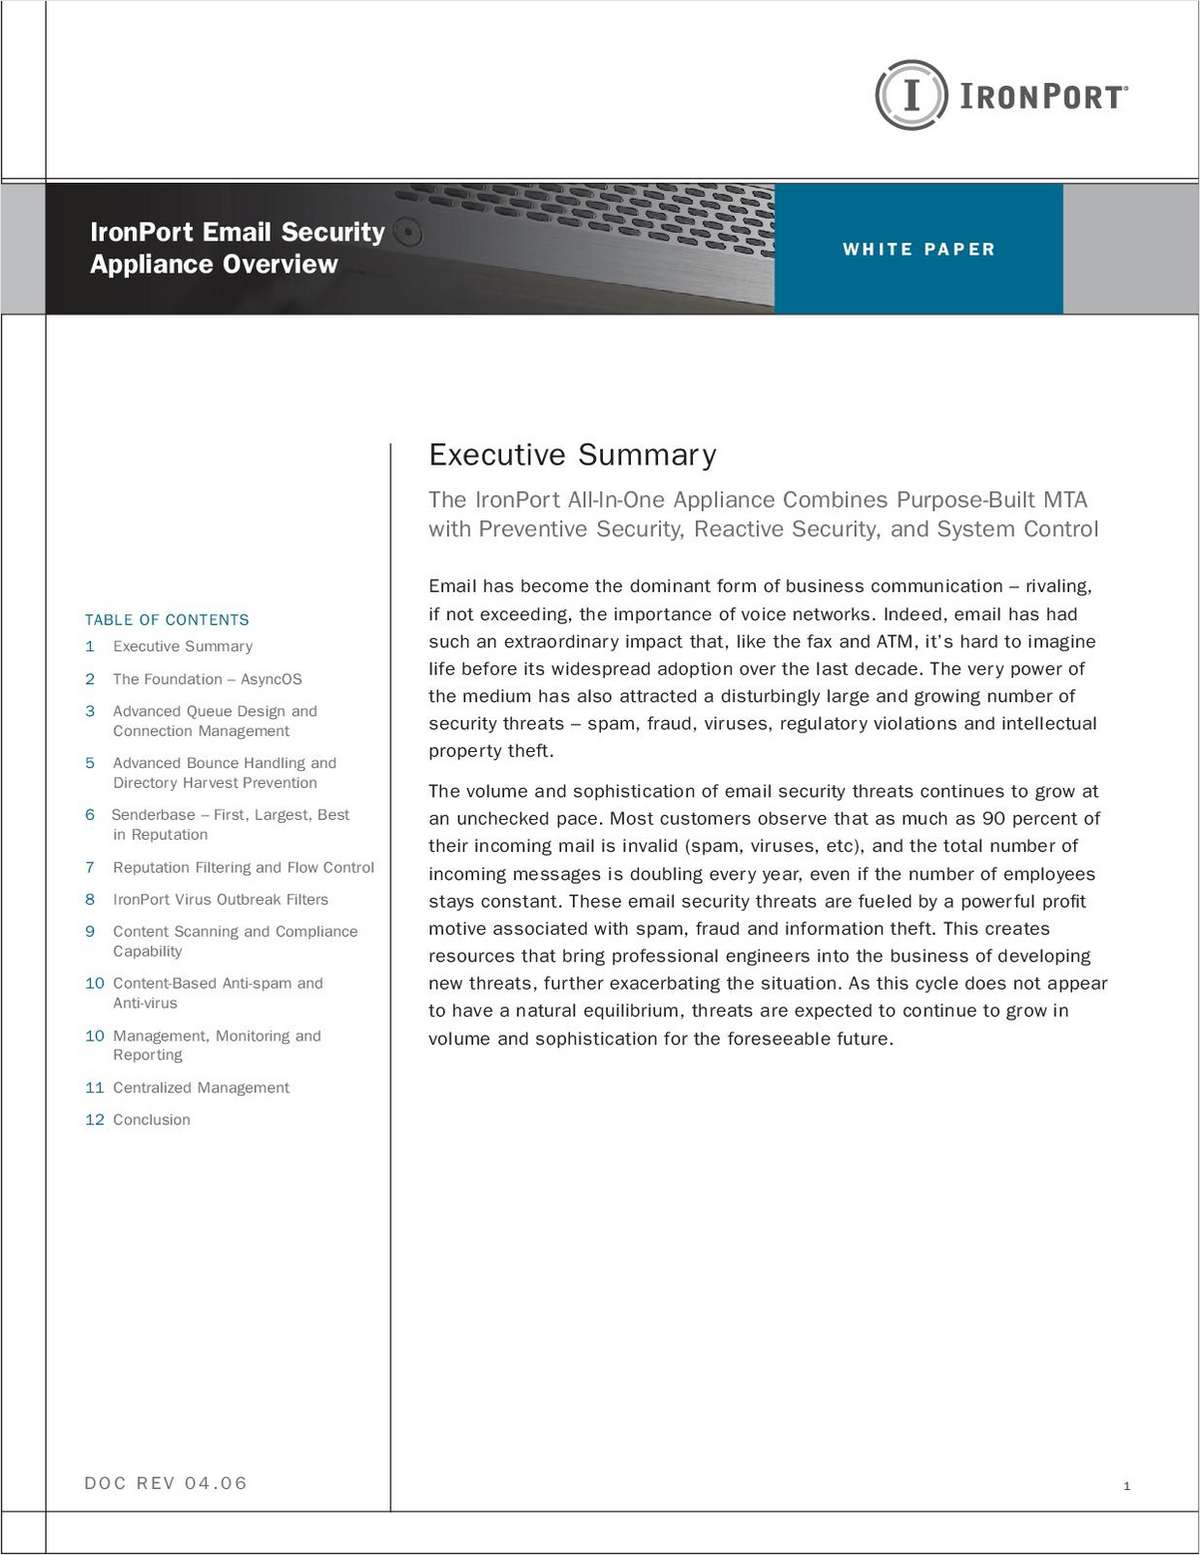 IronPort Email Security Appliance Overview